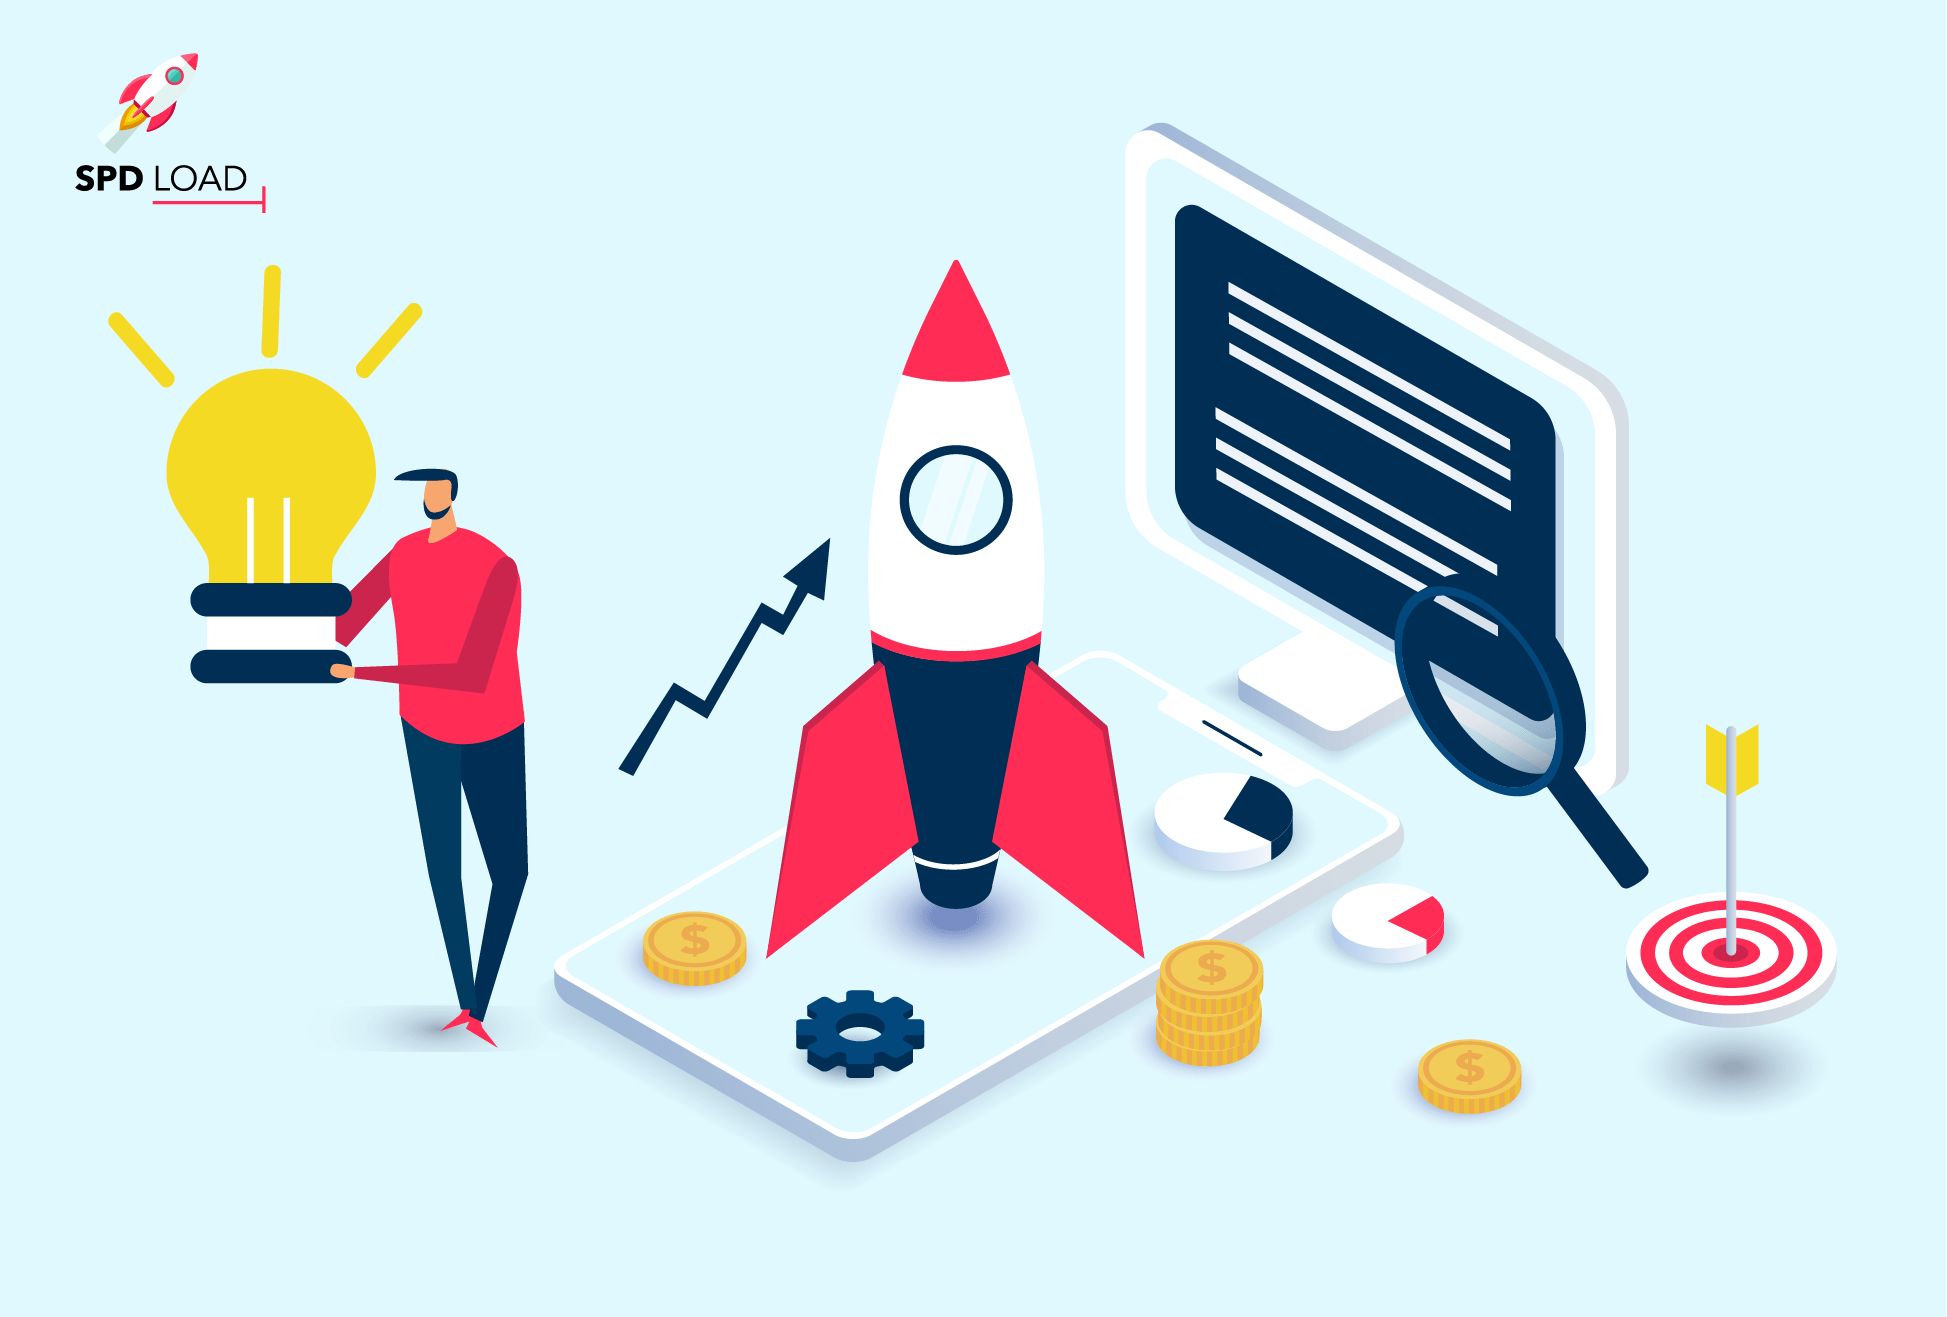 Check out 10 education startup ideas to start own product in 2020